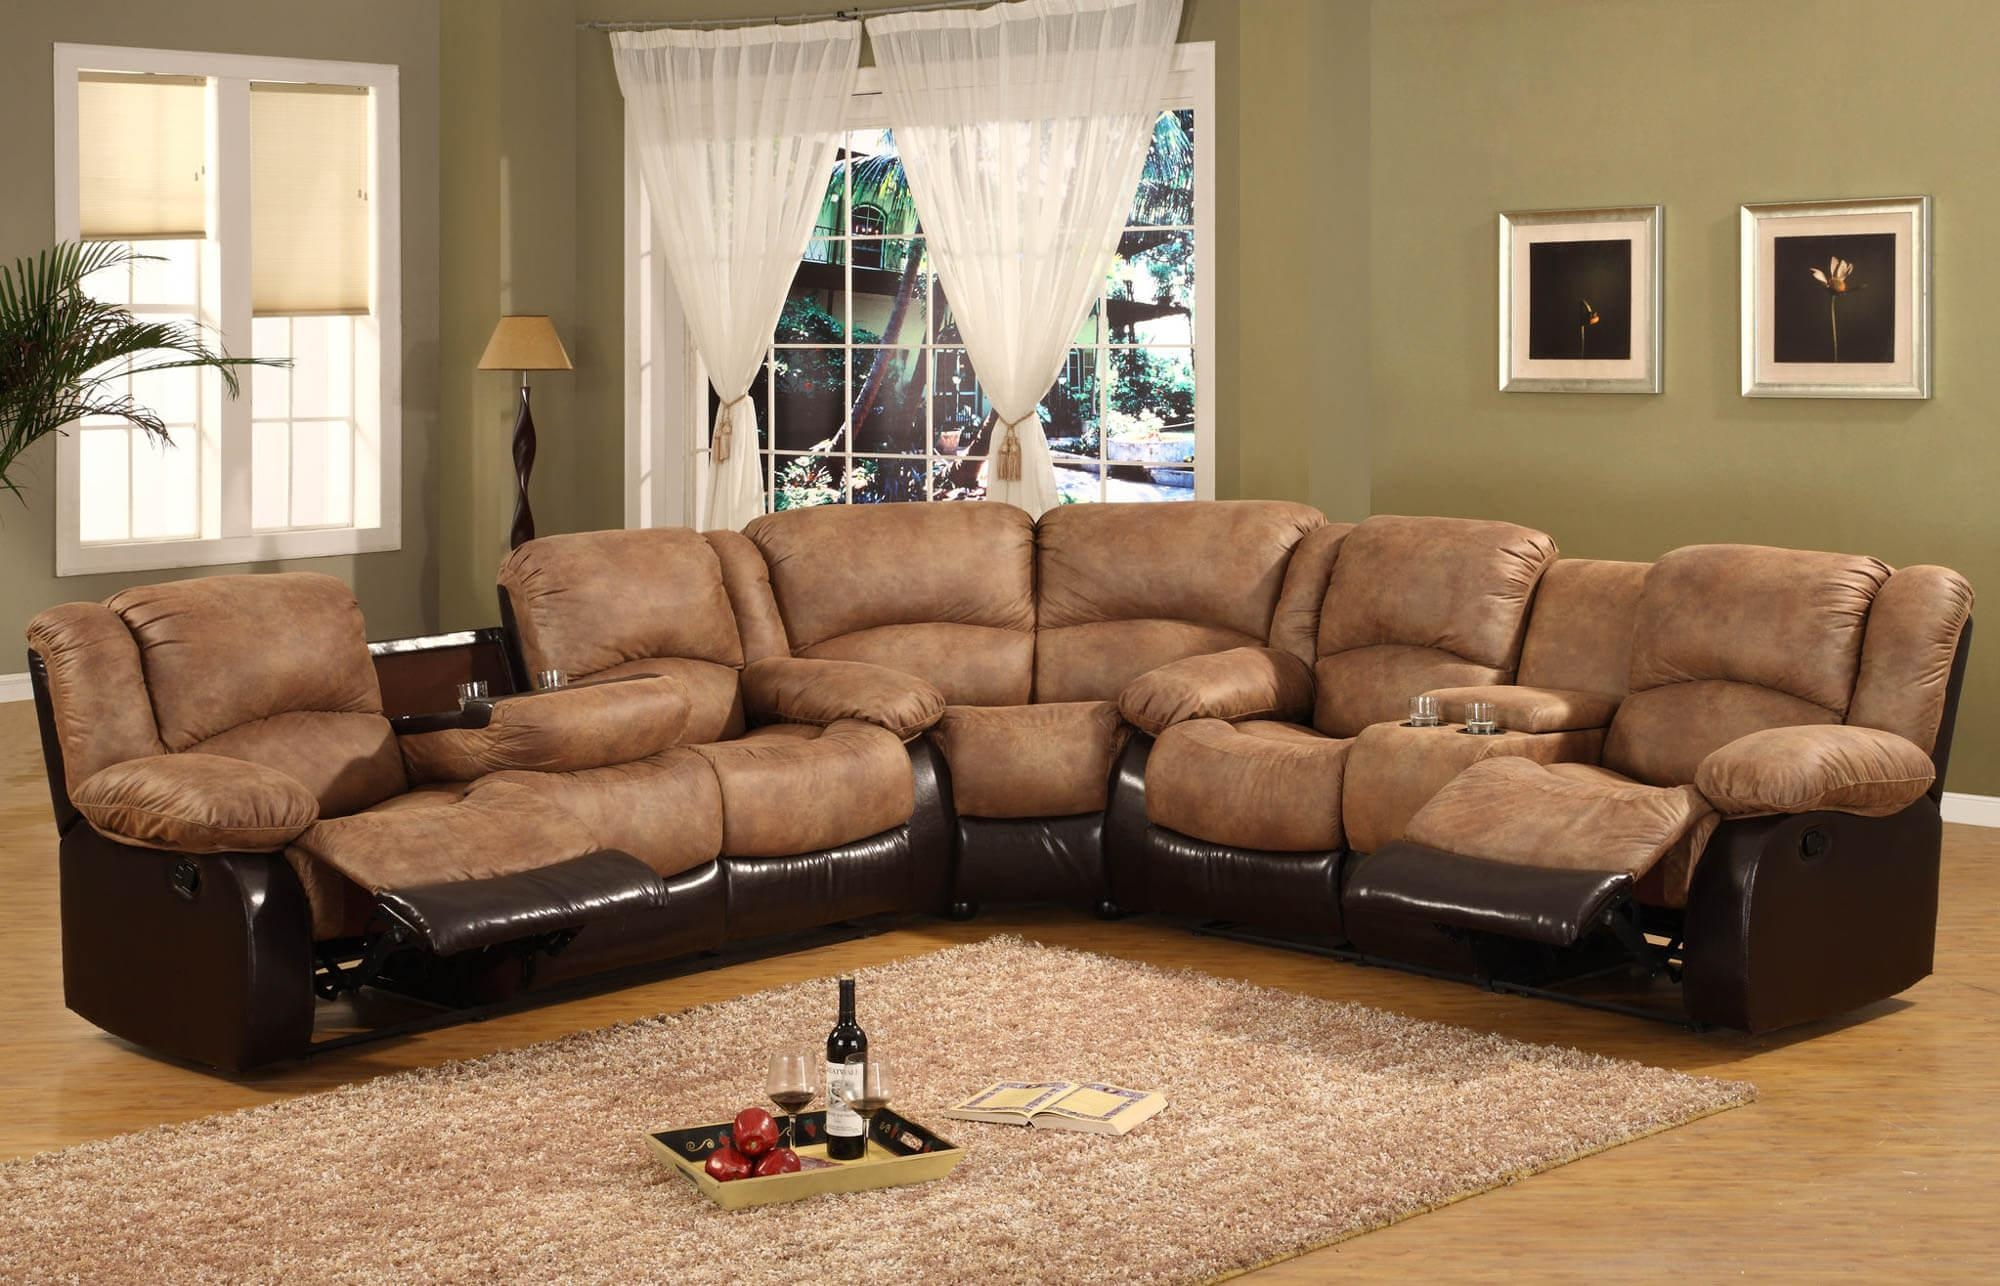 Sectional Sofa Craigslist | Sofa Gallery | Kengire For Craigslist Sectional Sofas (Image 13 of 20)